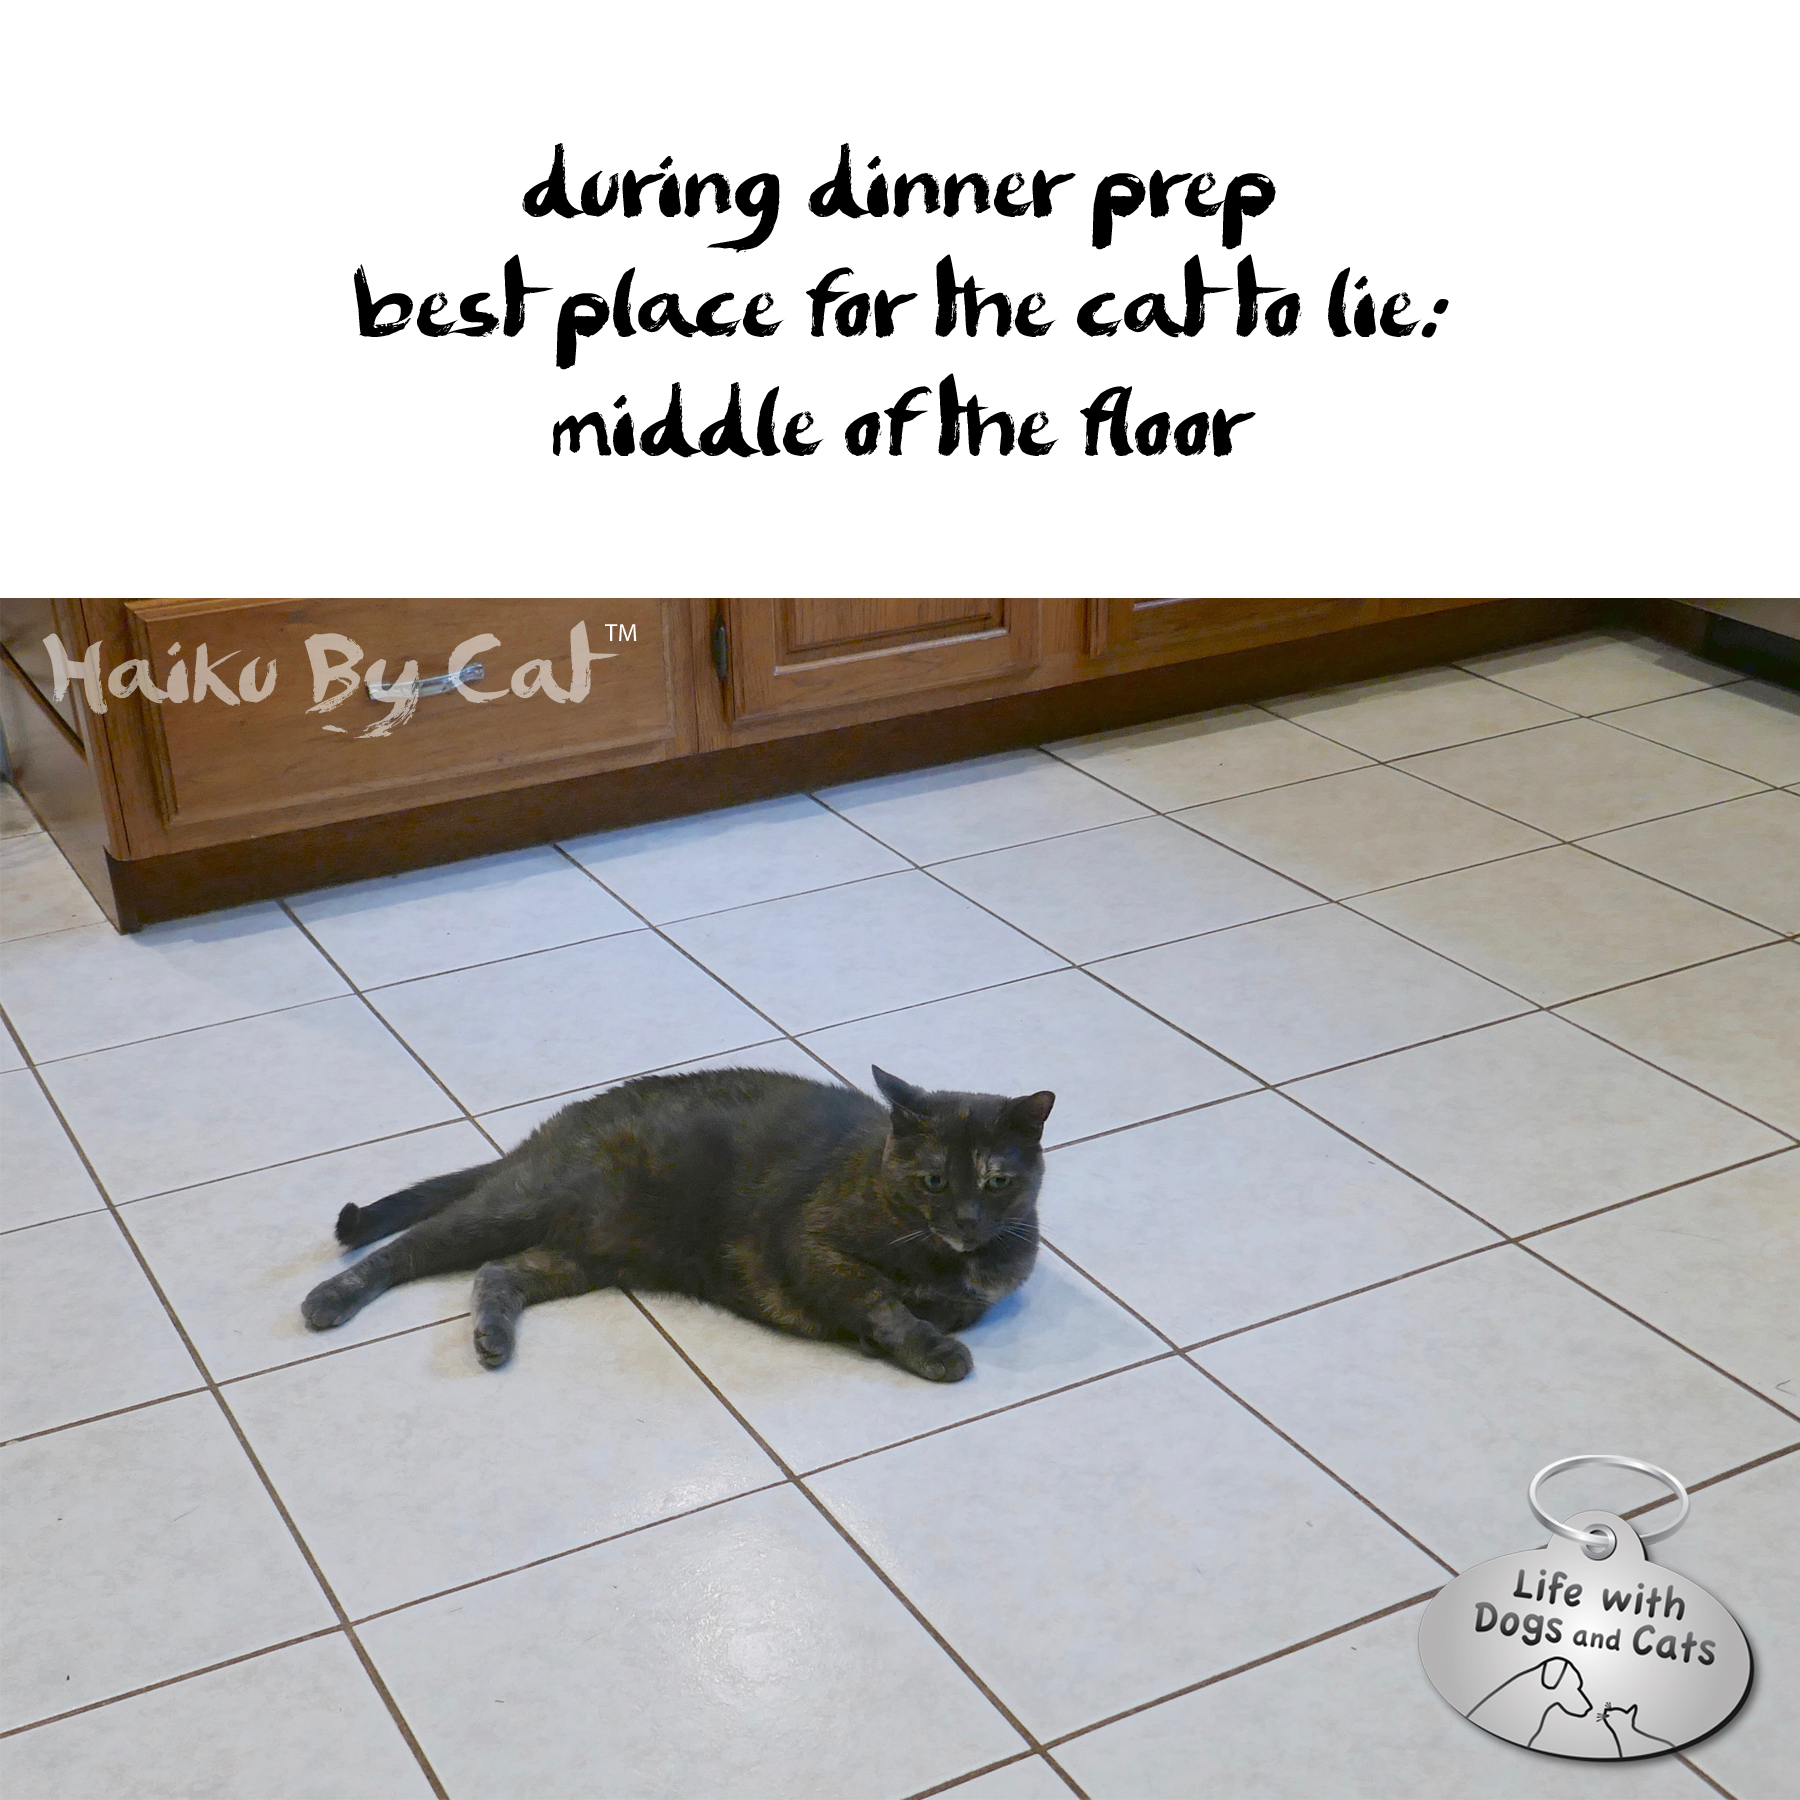 during dinner prep / best place for the cat to lie: / middle of the floor